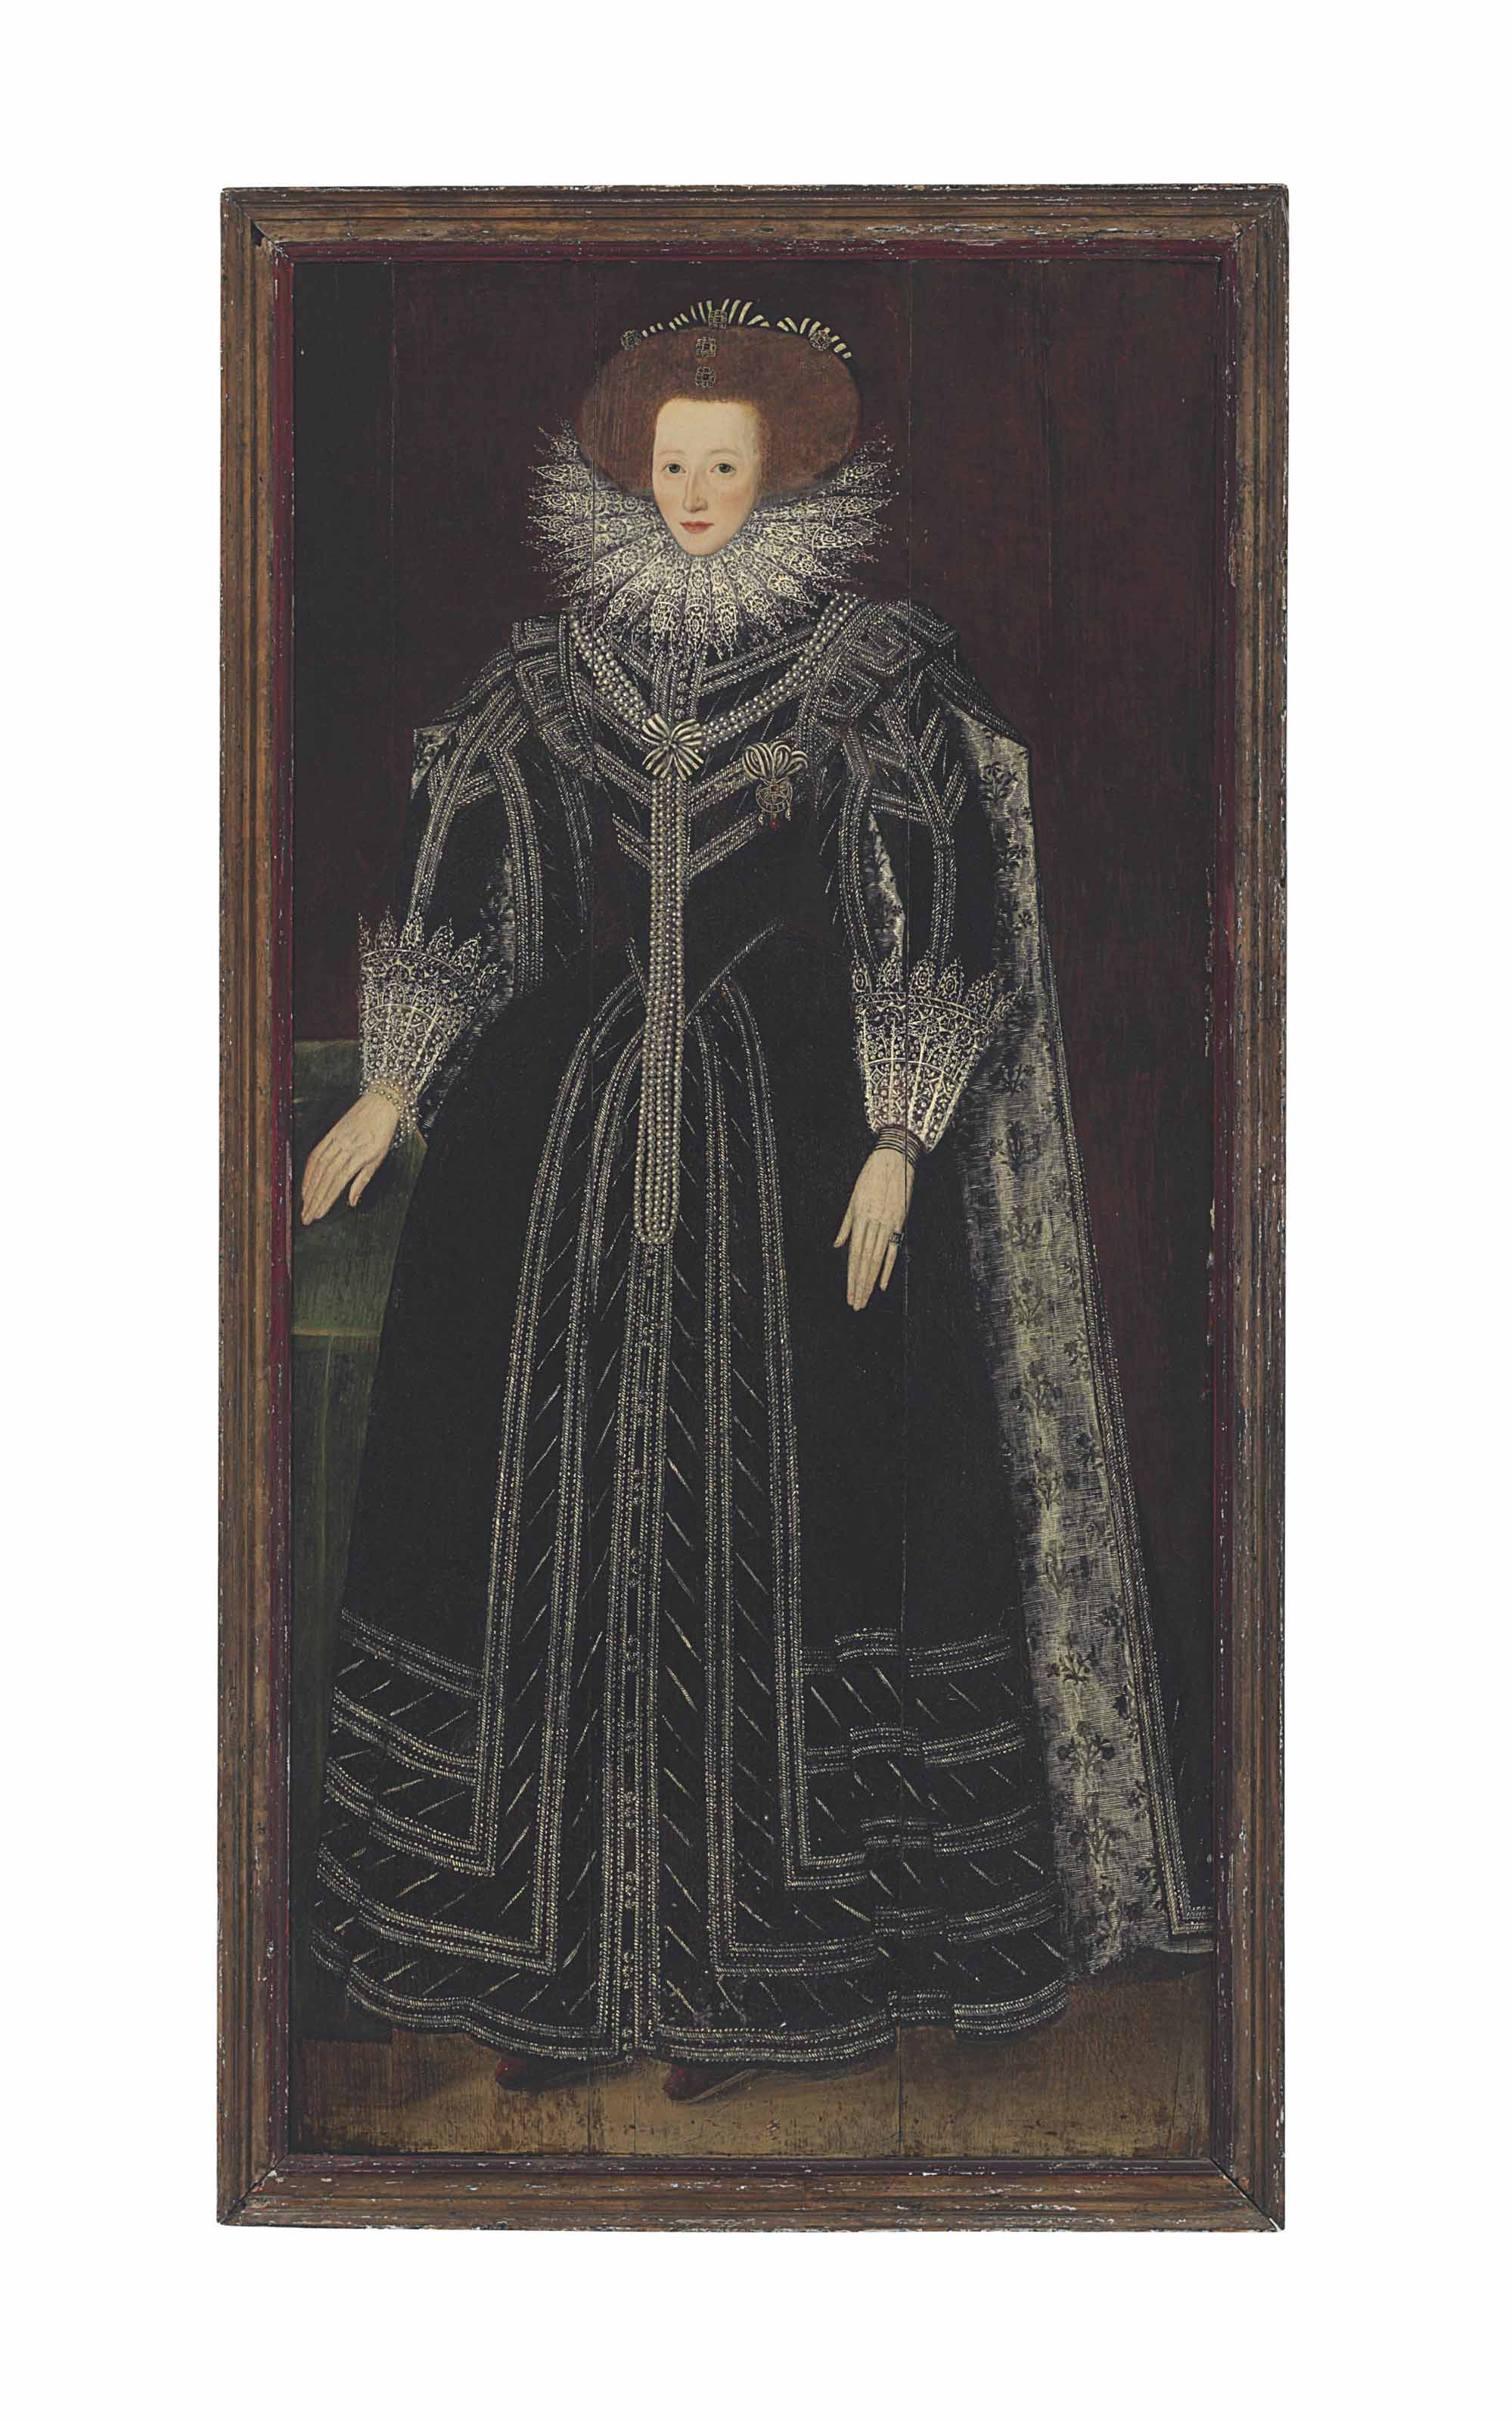 Portrait of a lady, full-length, in black embroidered gown with lace collar